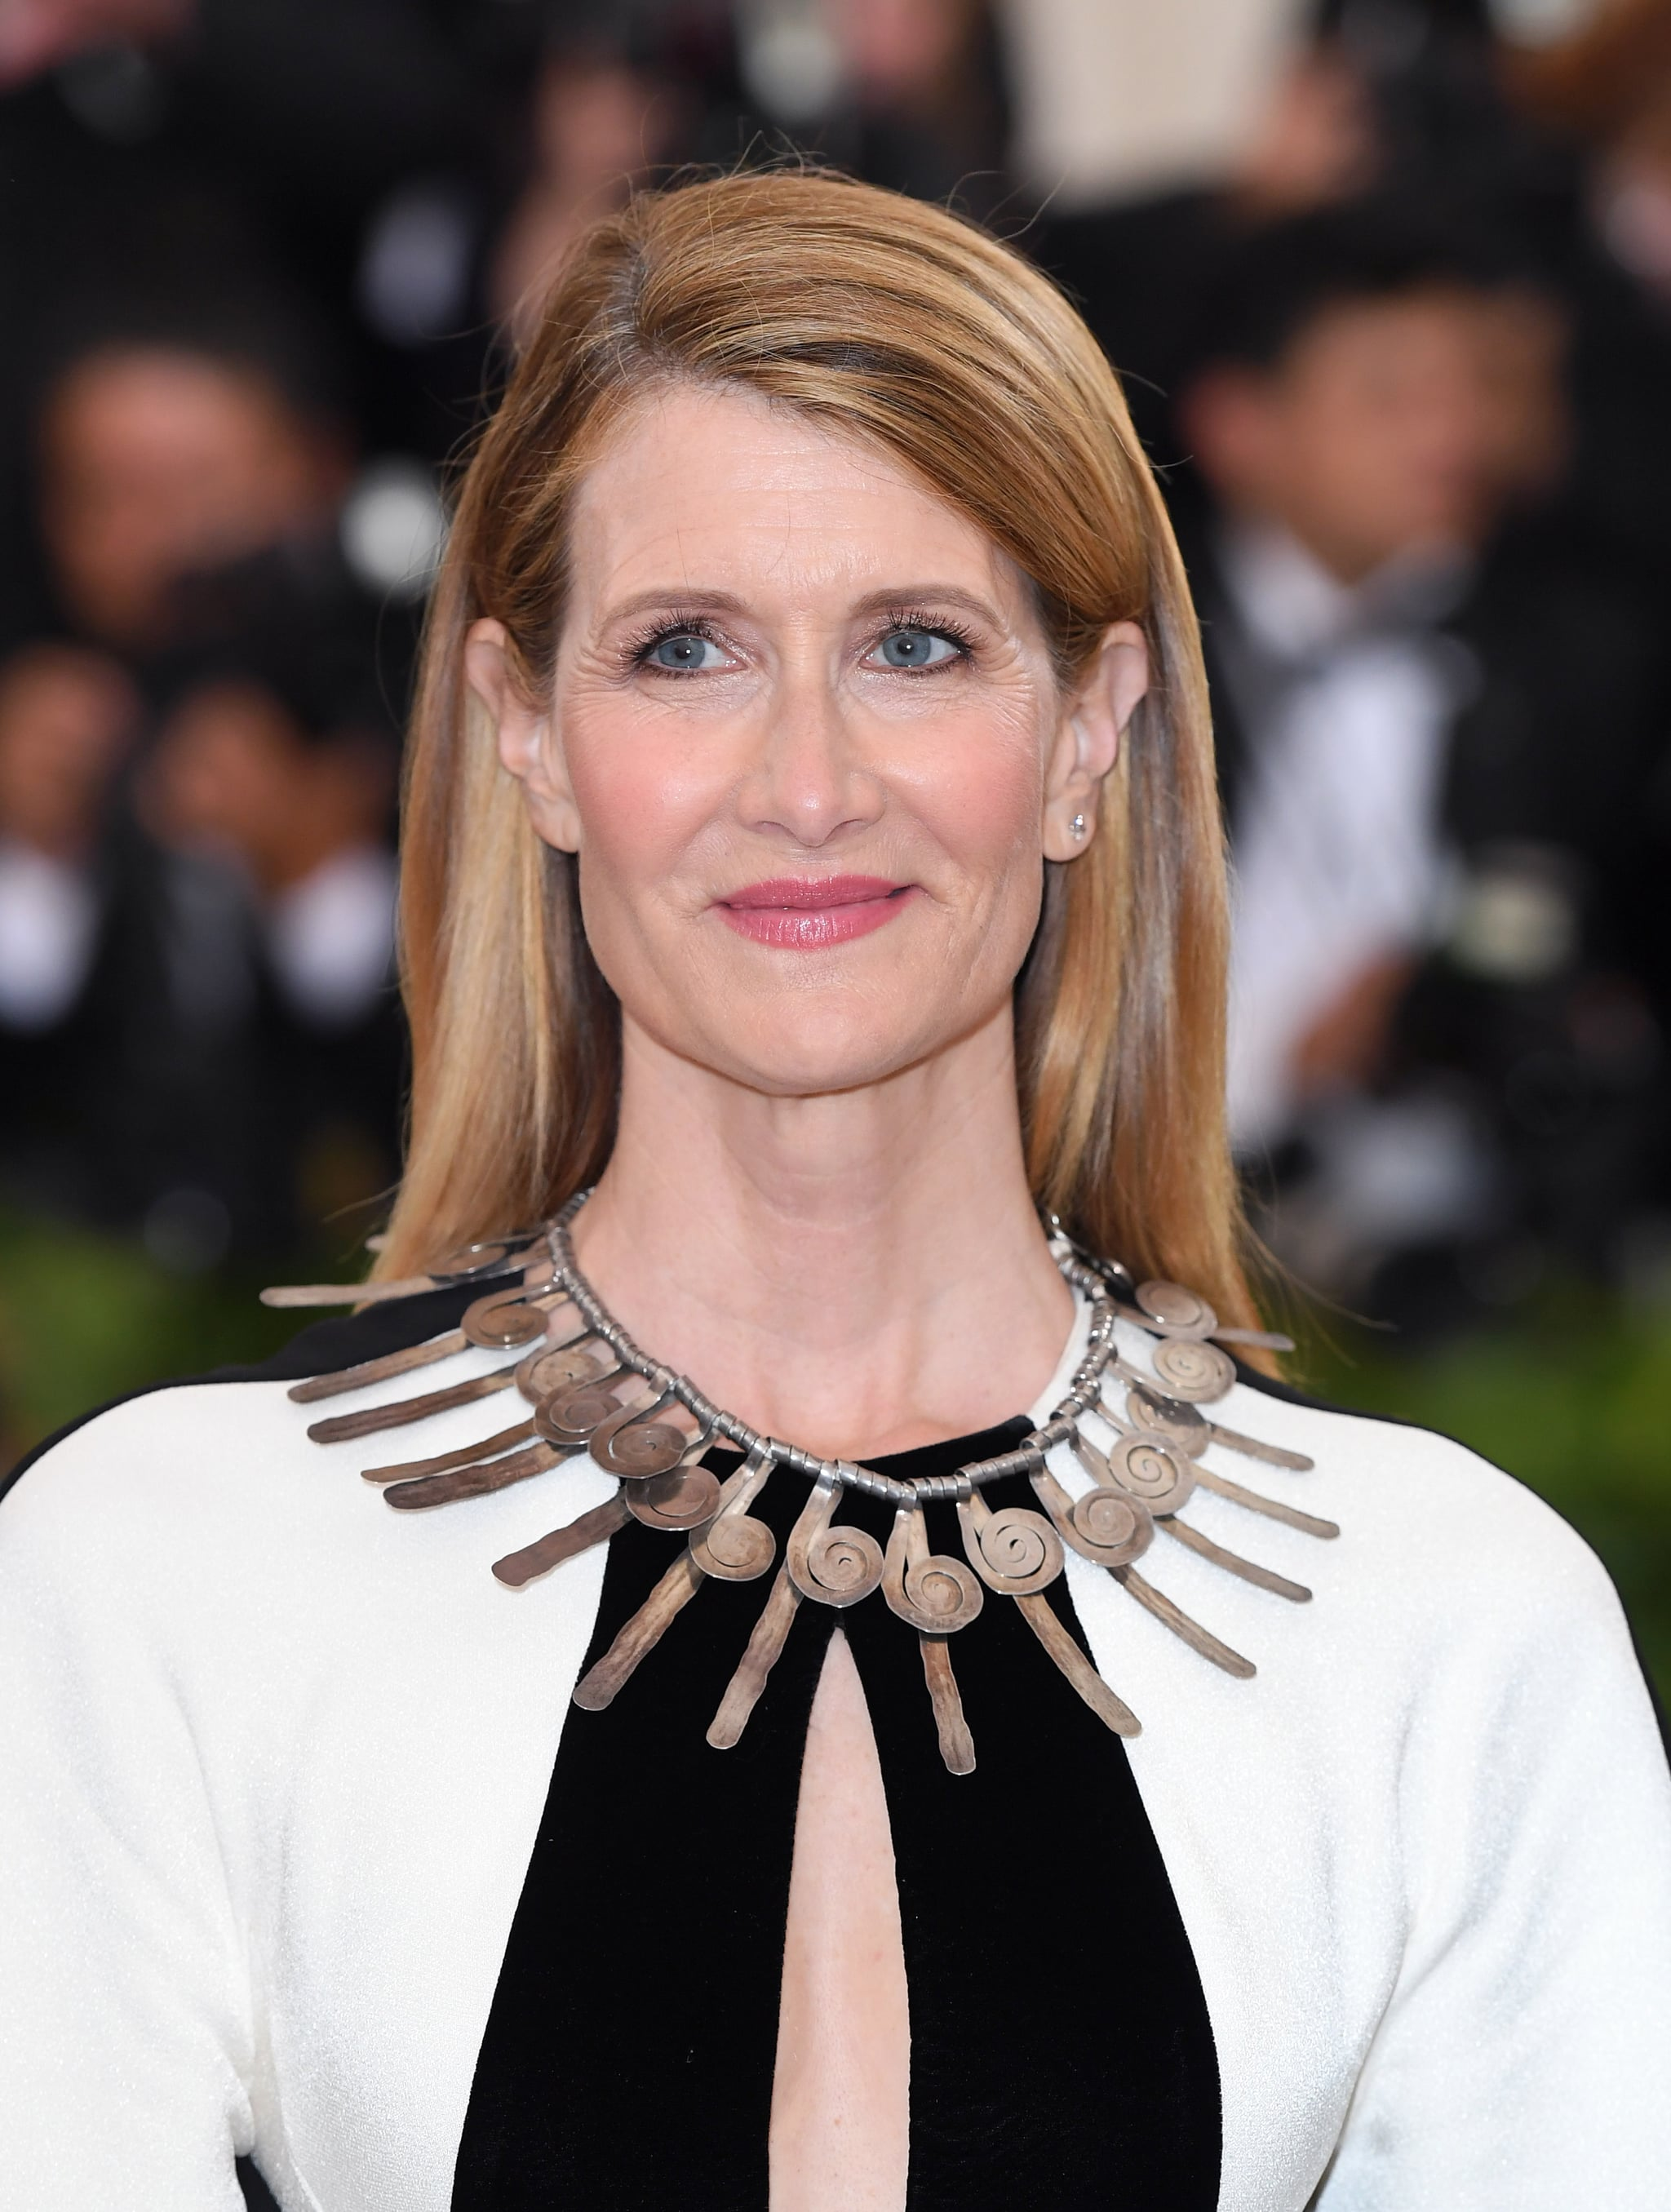 NEW YORK, NY - MAY 07:  Laura Dern attends the Heavenly Bodies: Fashion & The Catholic Imagination Costume Institute Gala at Metropolitan Museum of Art on May 7, 2018 in New York City.  (Photo by Karwai Tang/Getty Images)